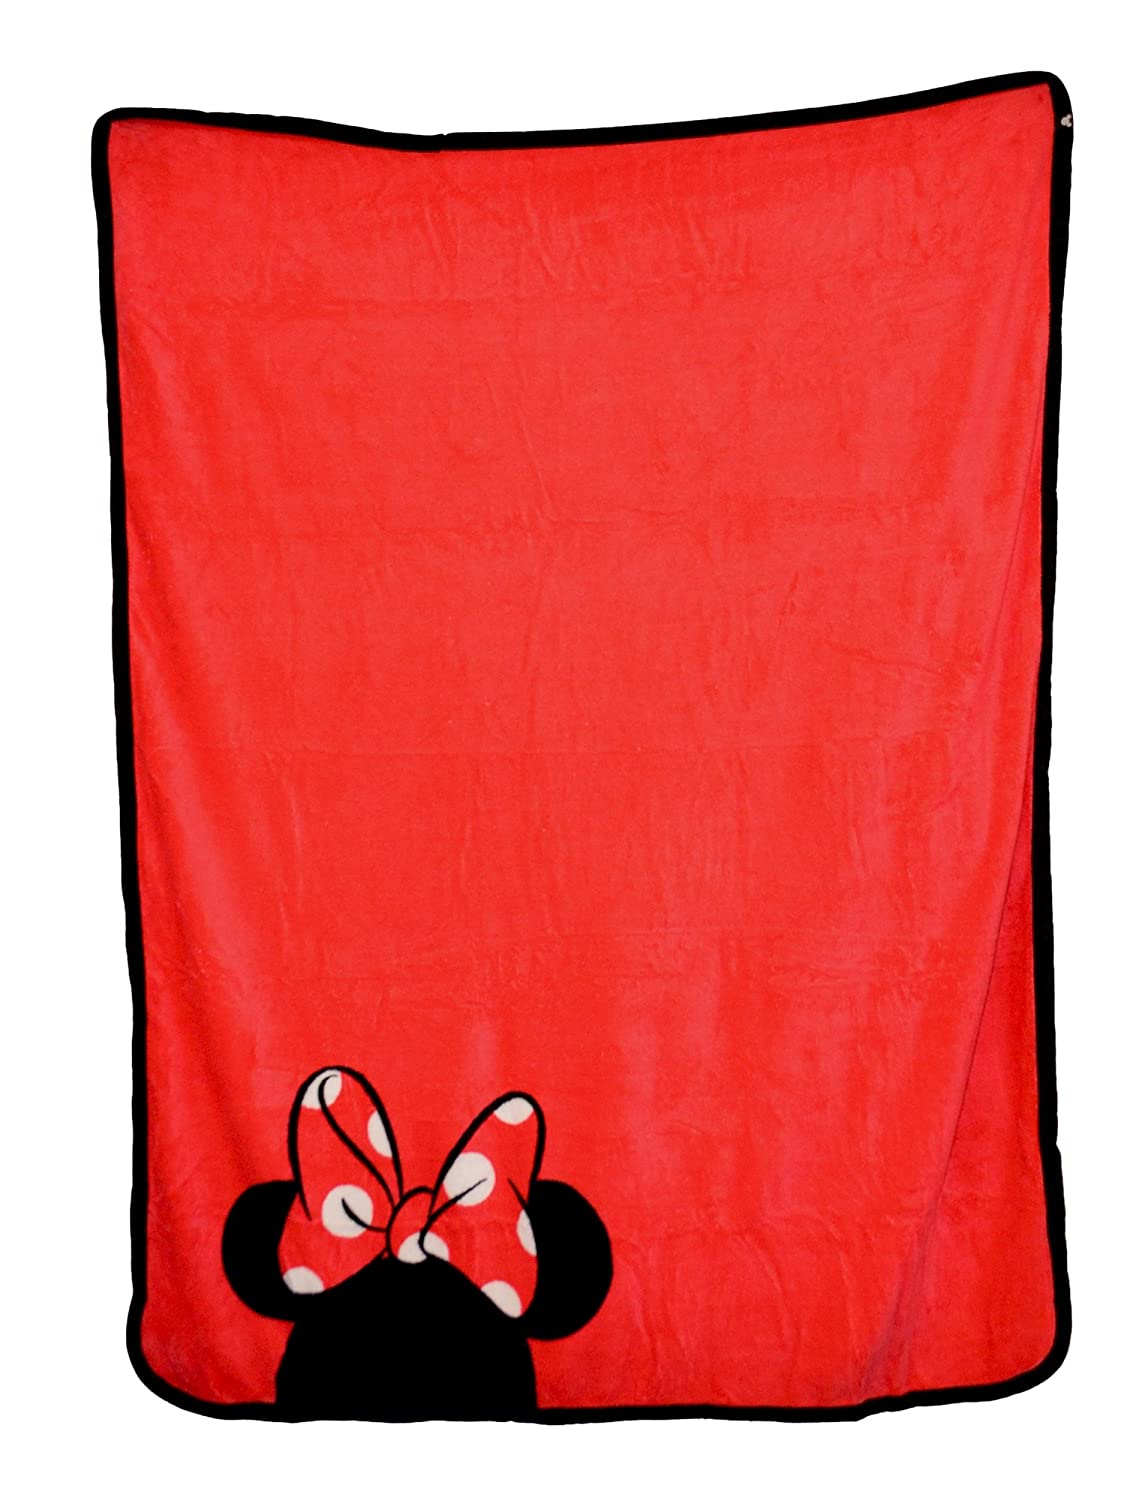 Minnie Mouse Blanket (120x150cm)